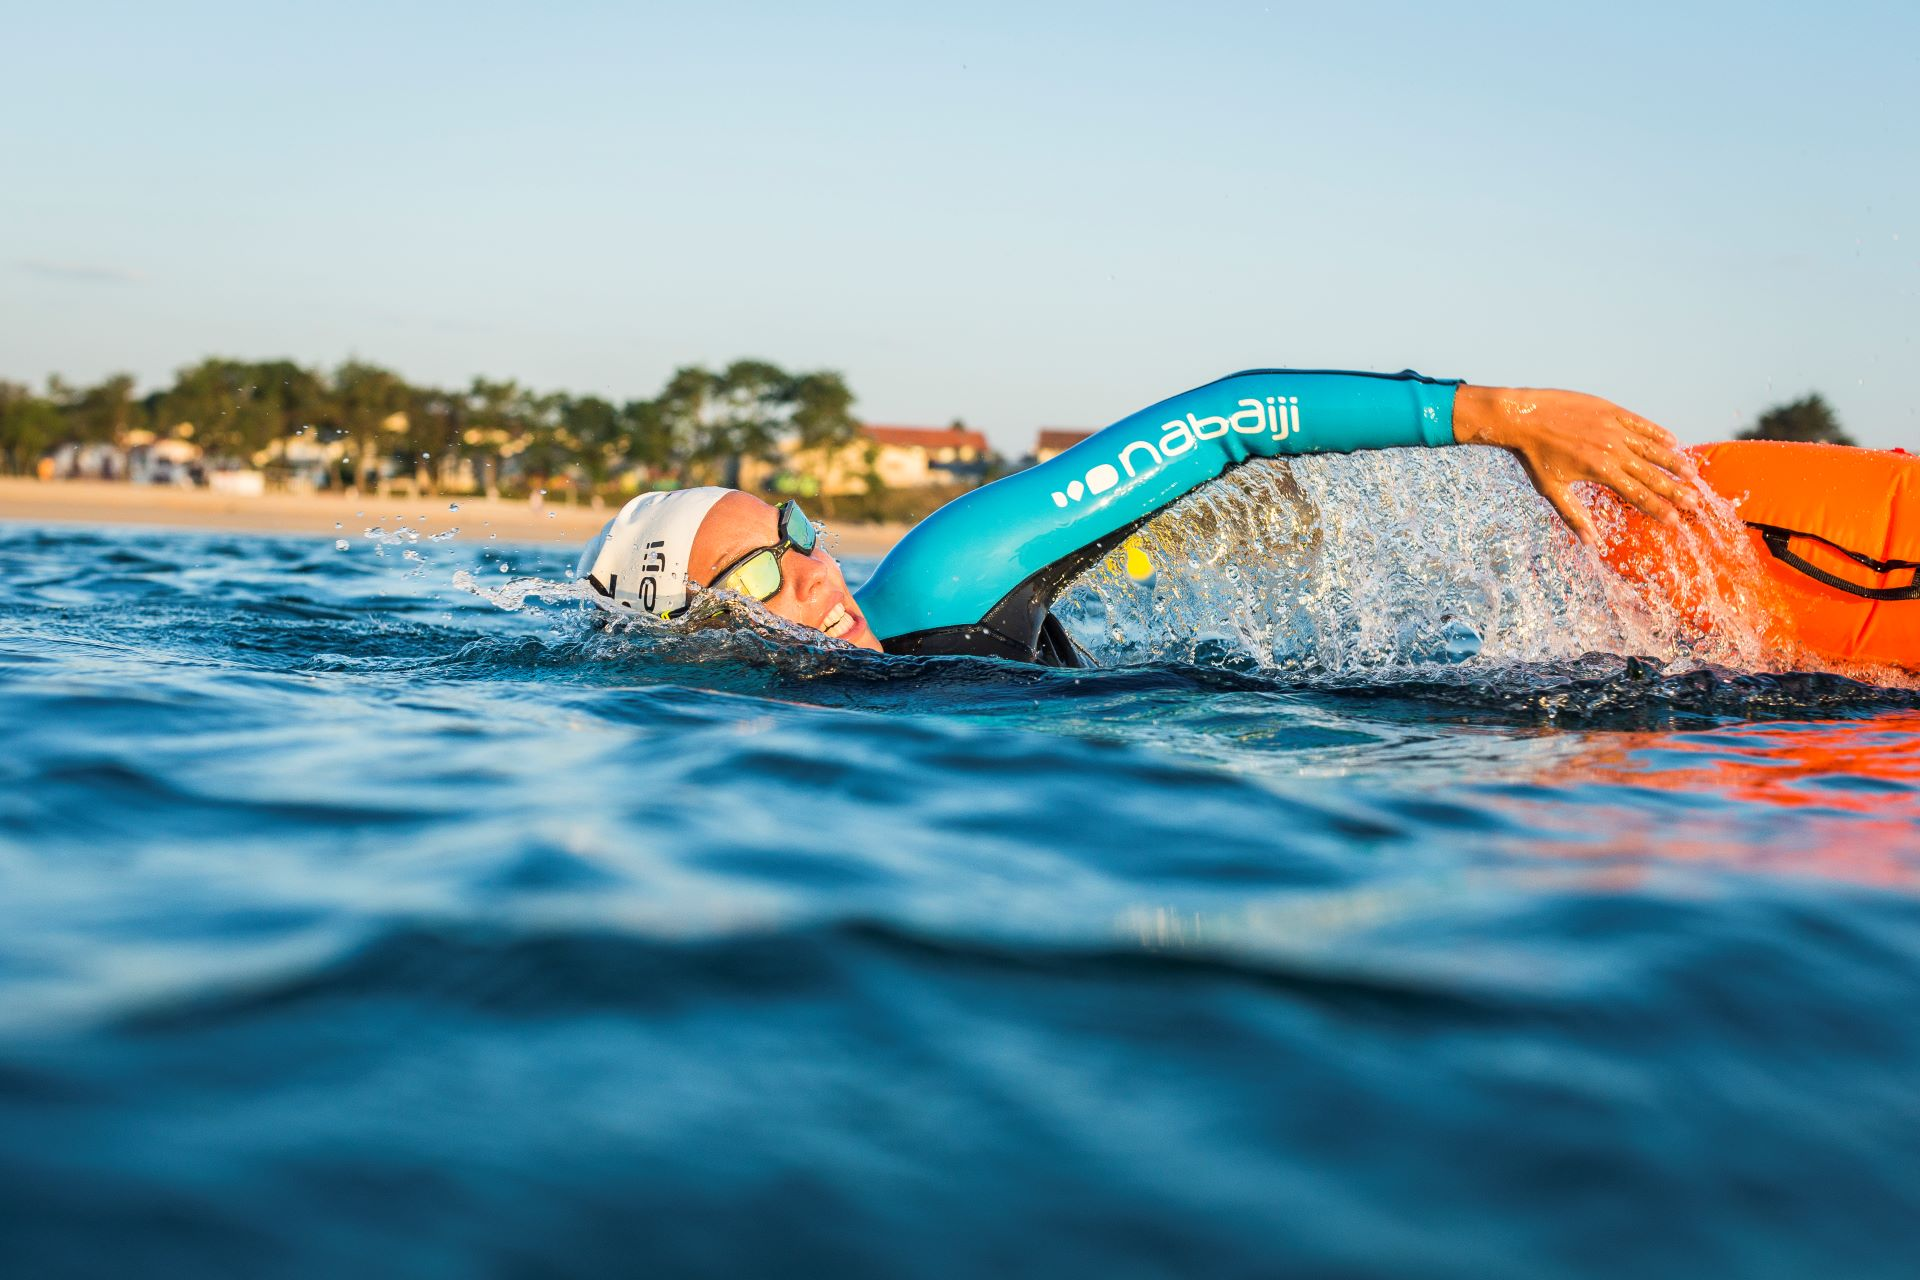 The Definitive Open Water Swimming Gear List